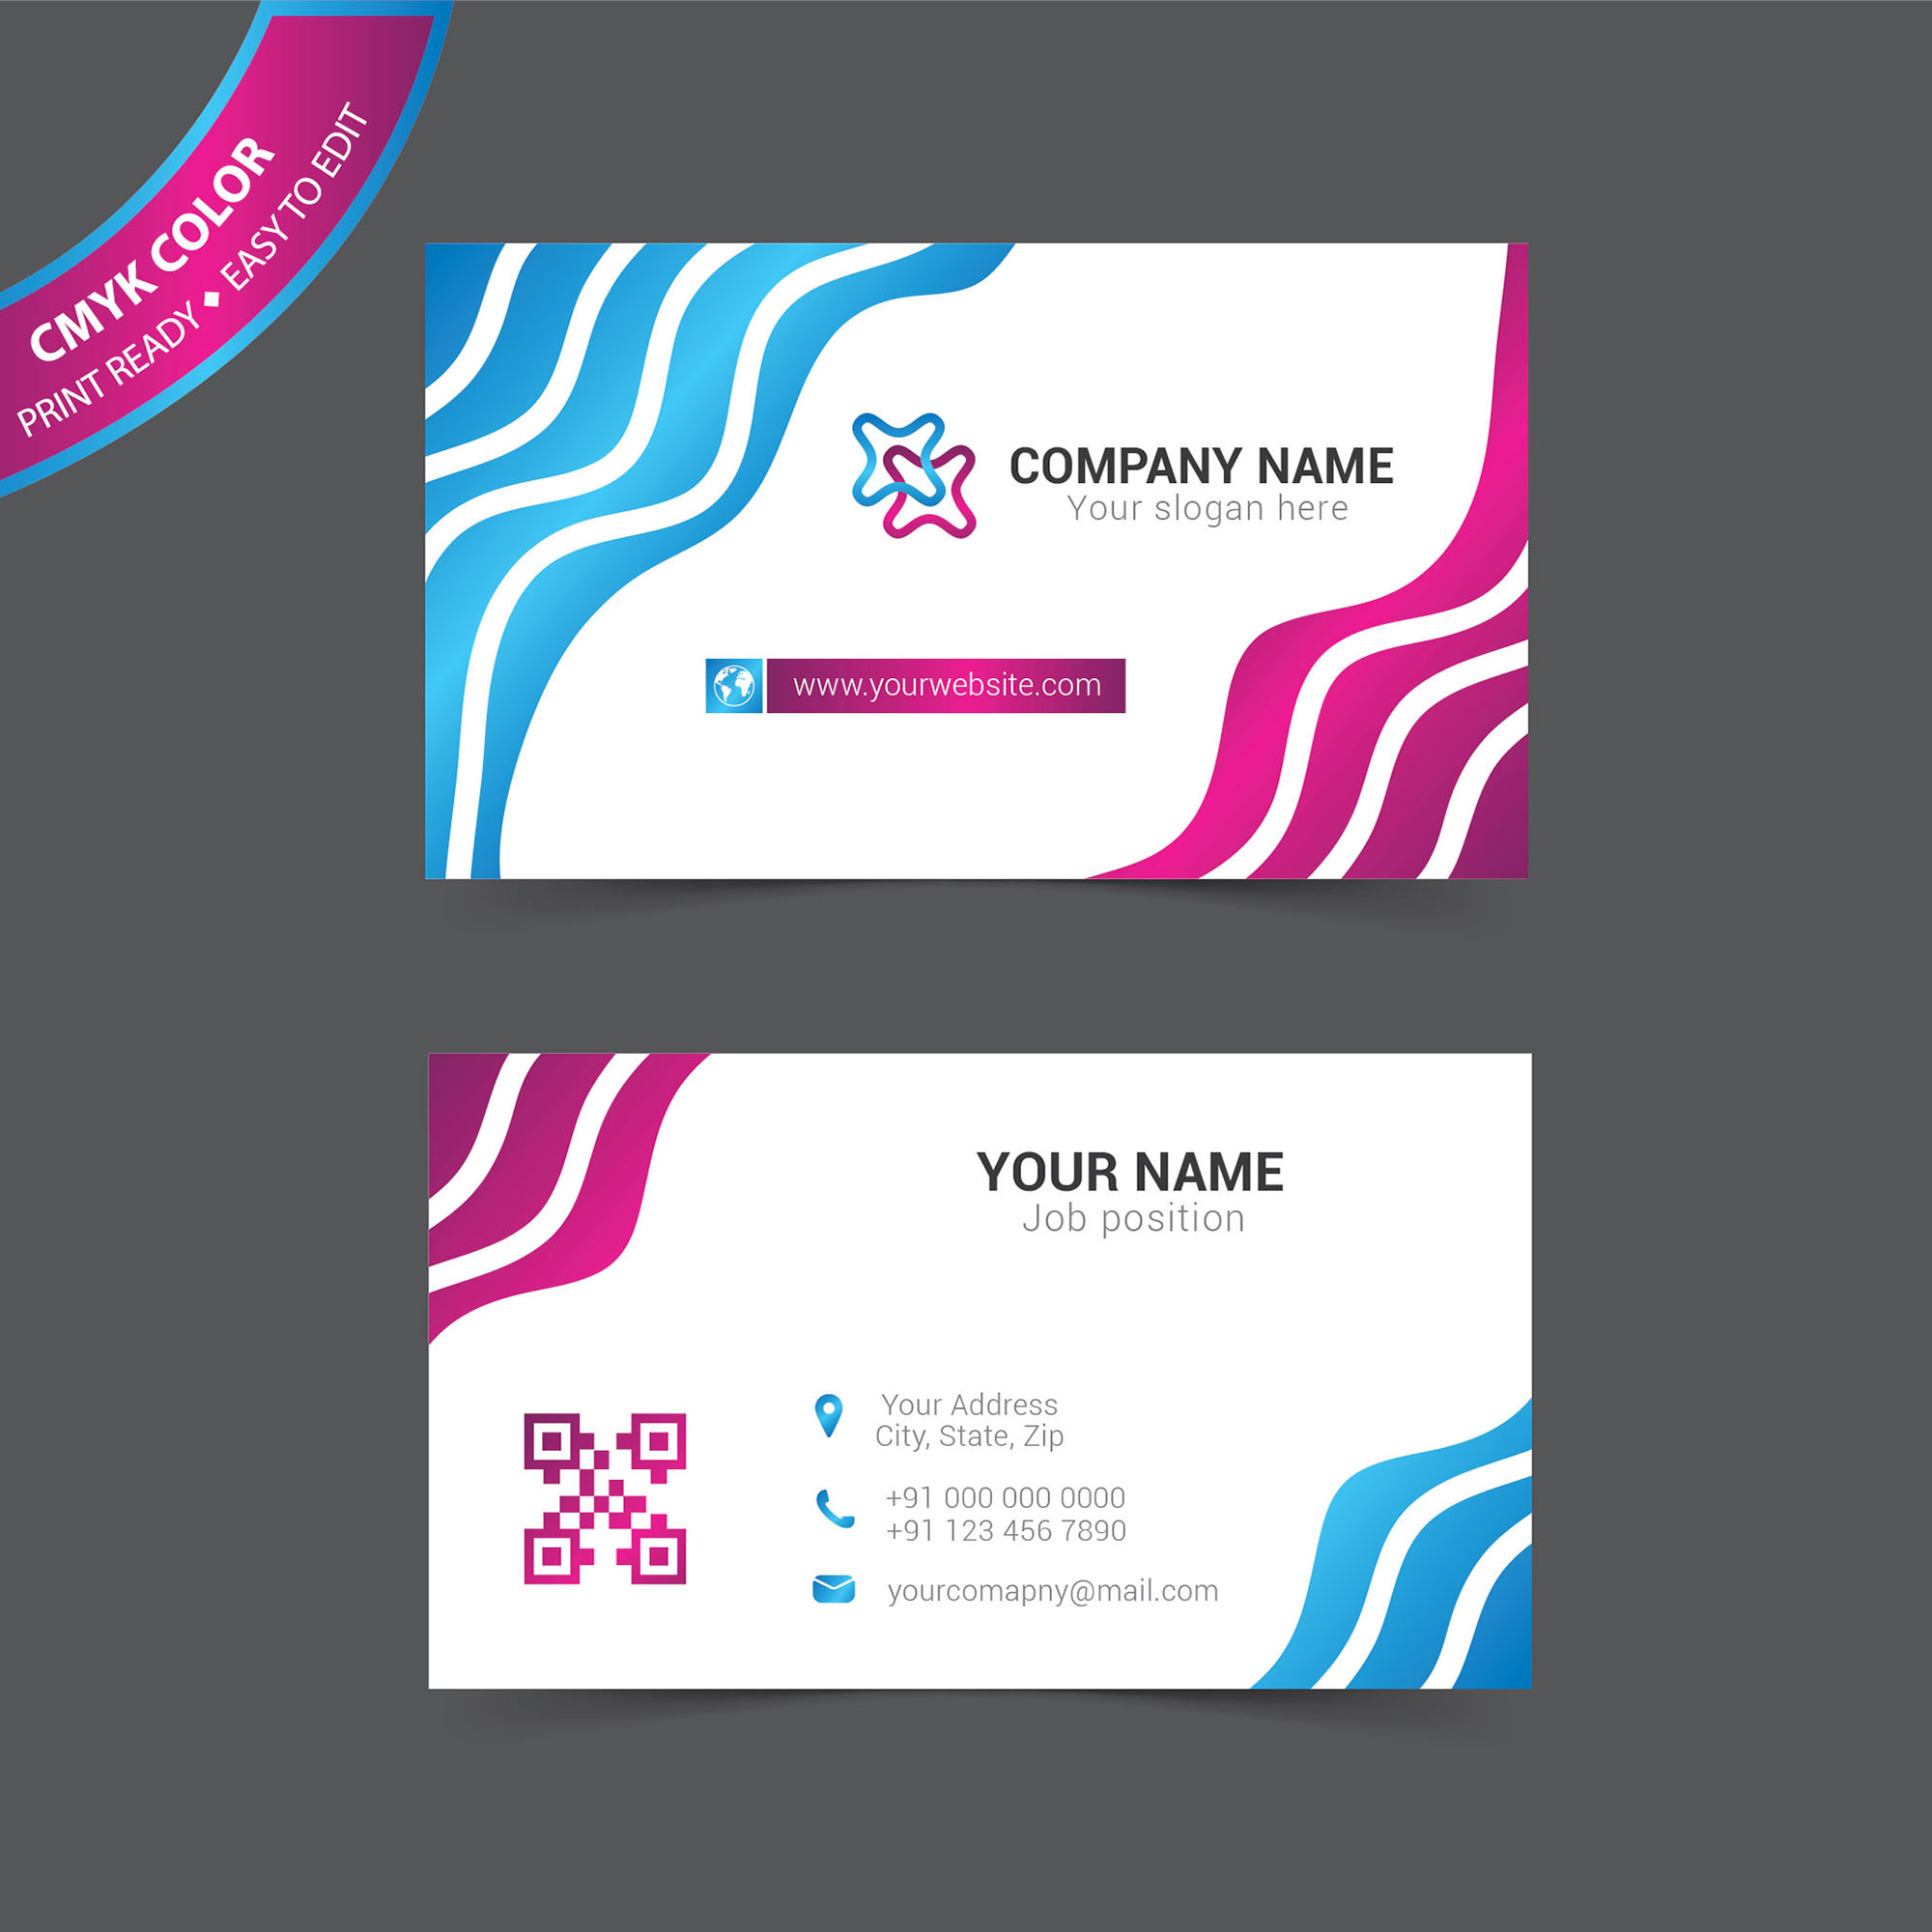 Digital business card free download free vector wisxi business card business cards business card design business card template design templates reheart